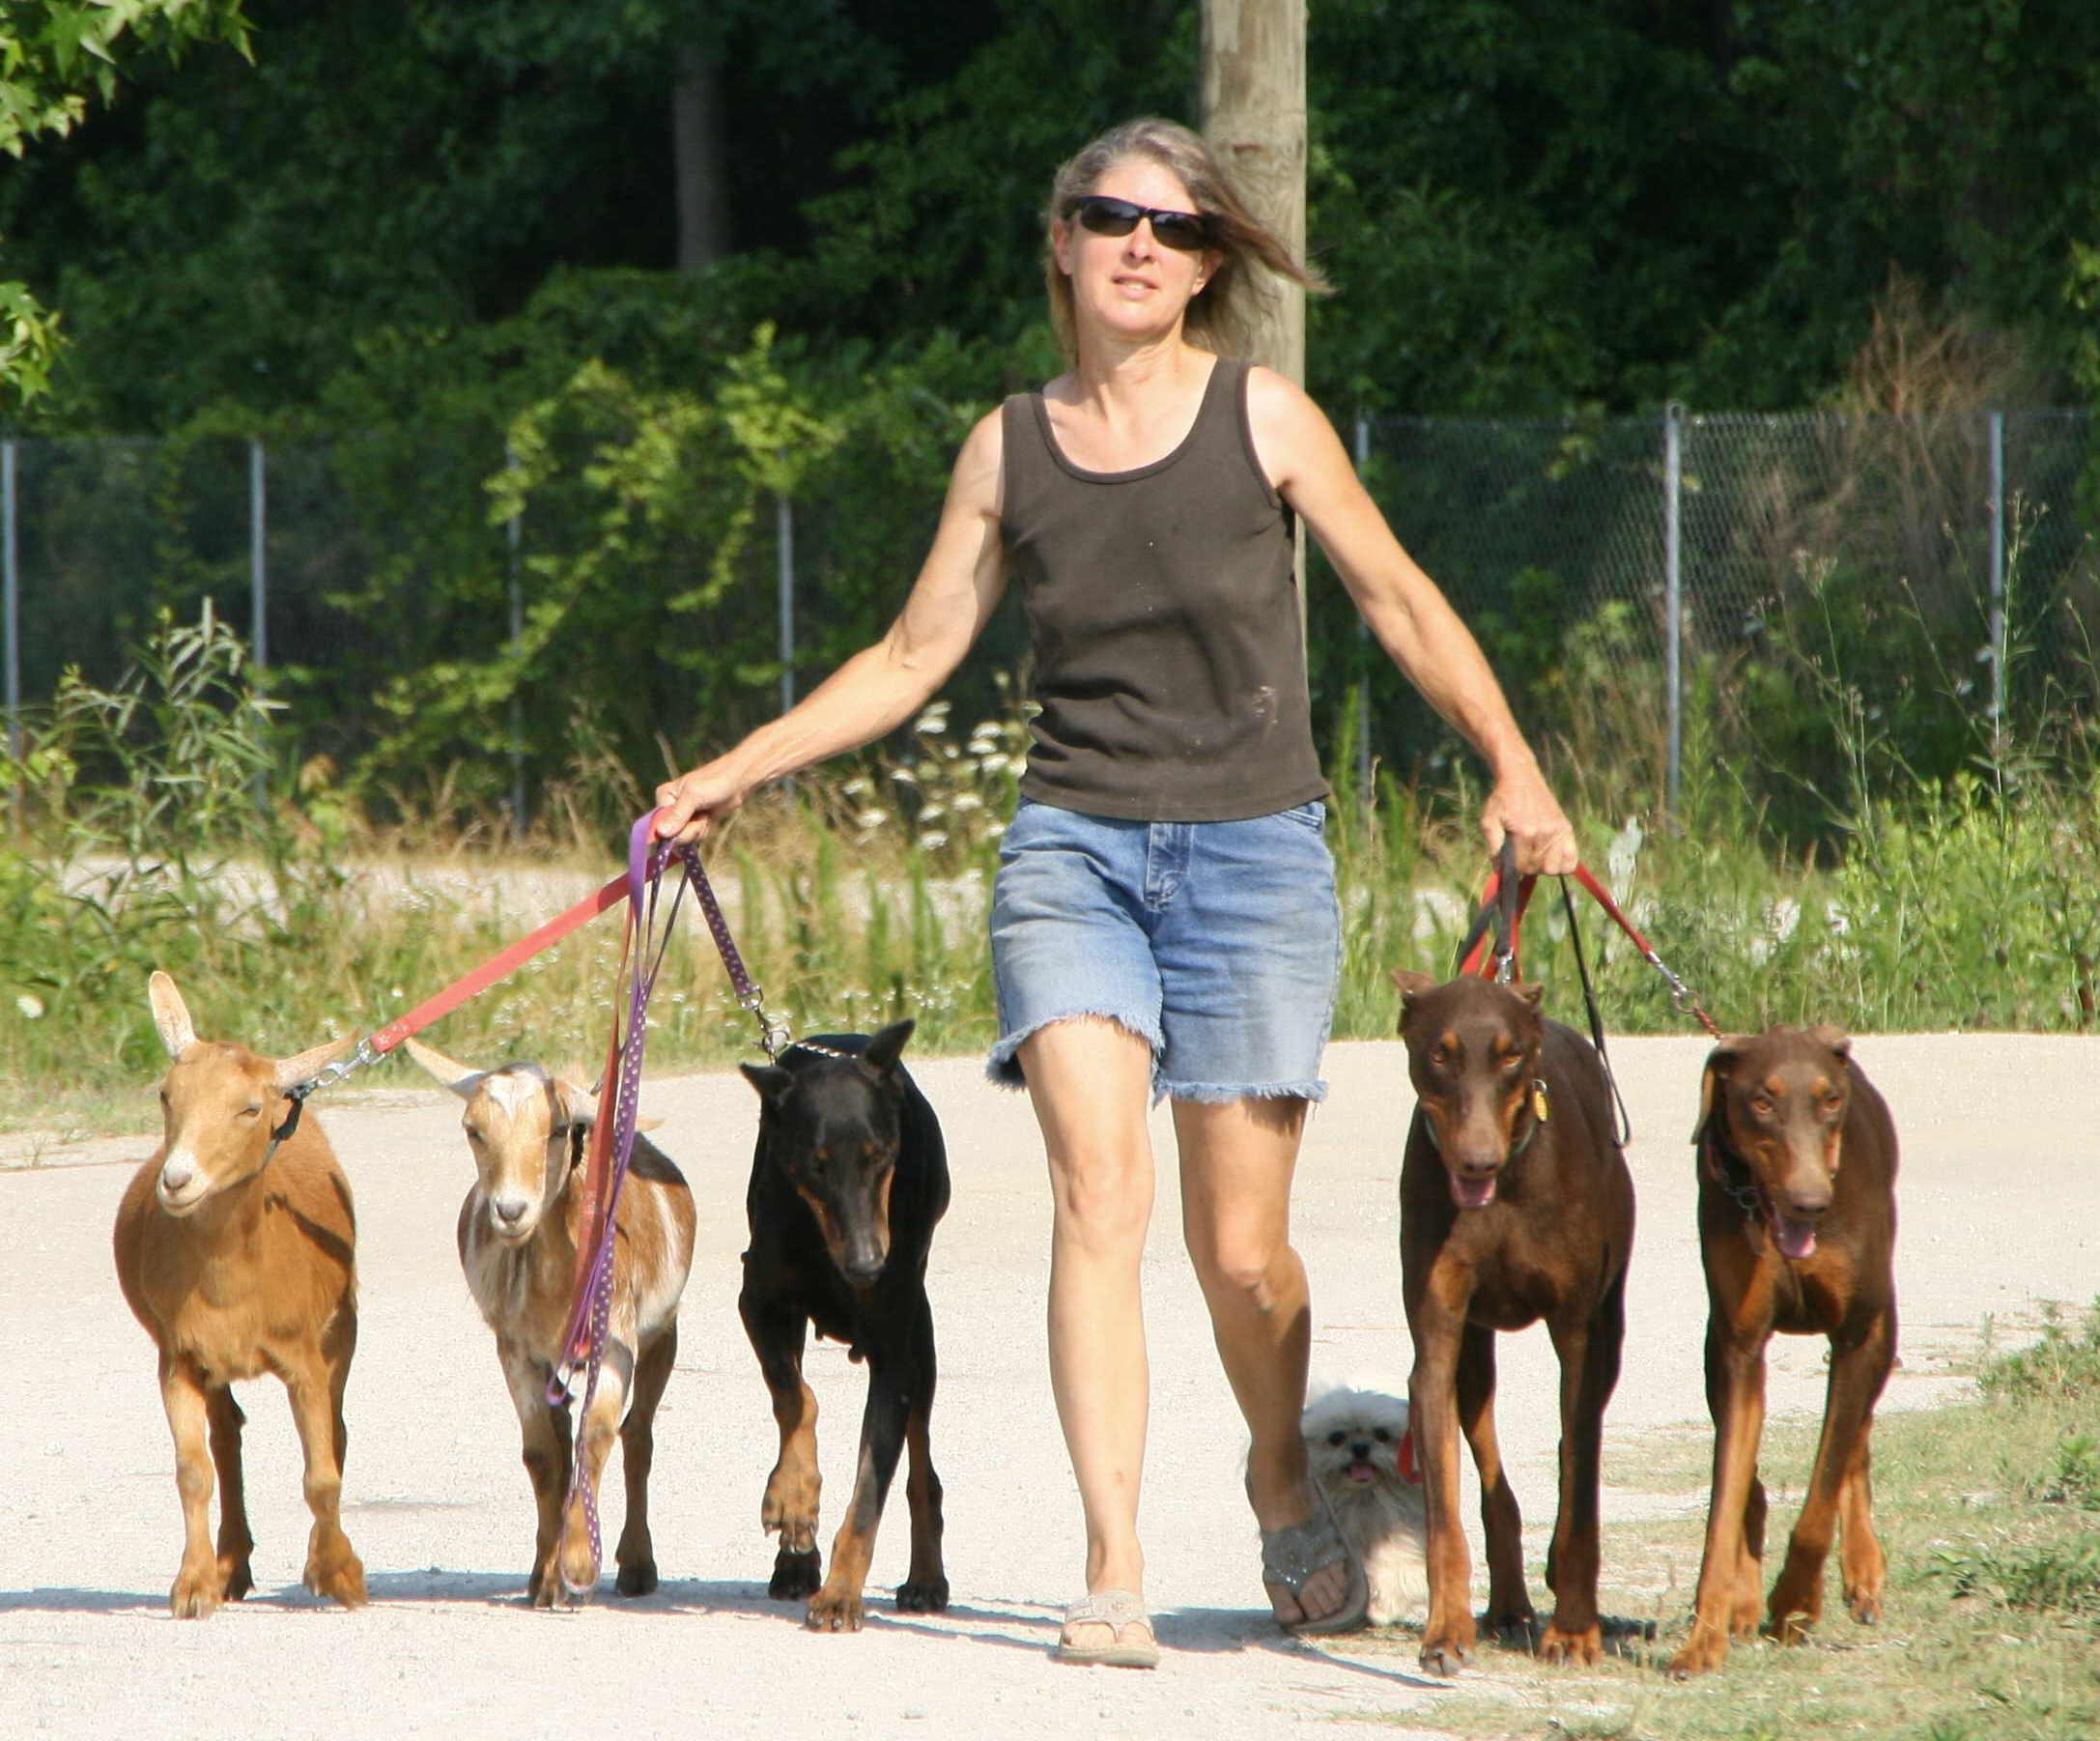 Pack-walking dogs & goats together at SHF